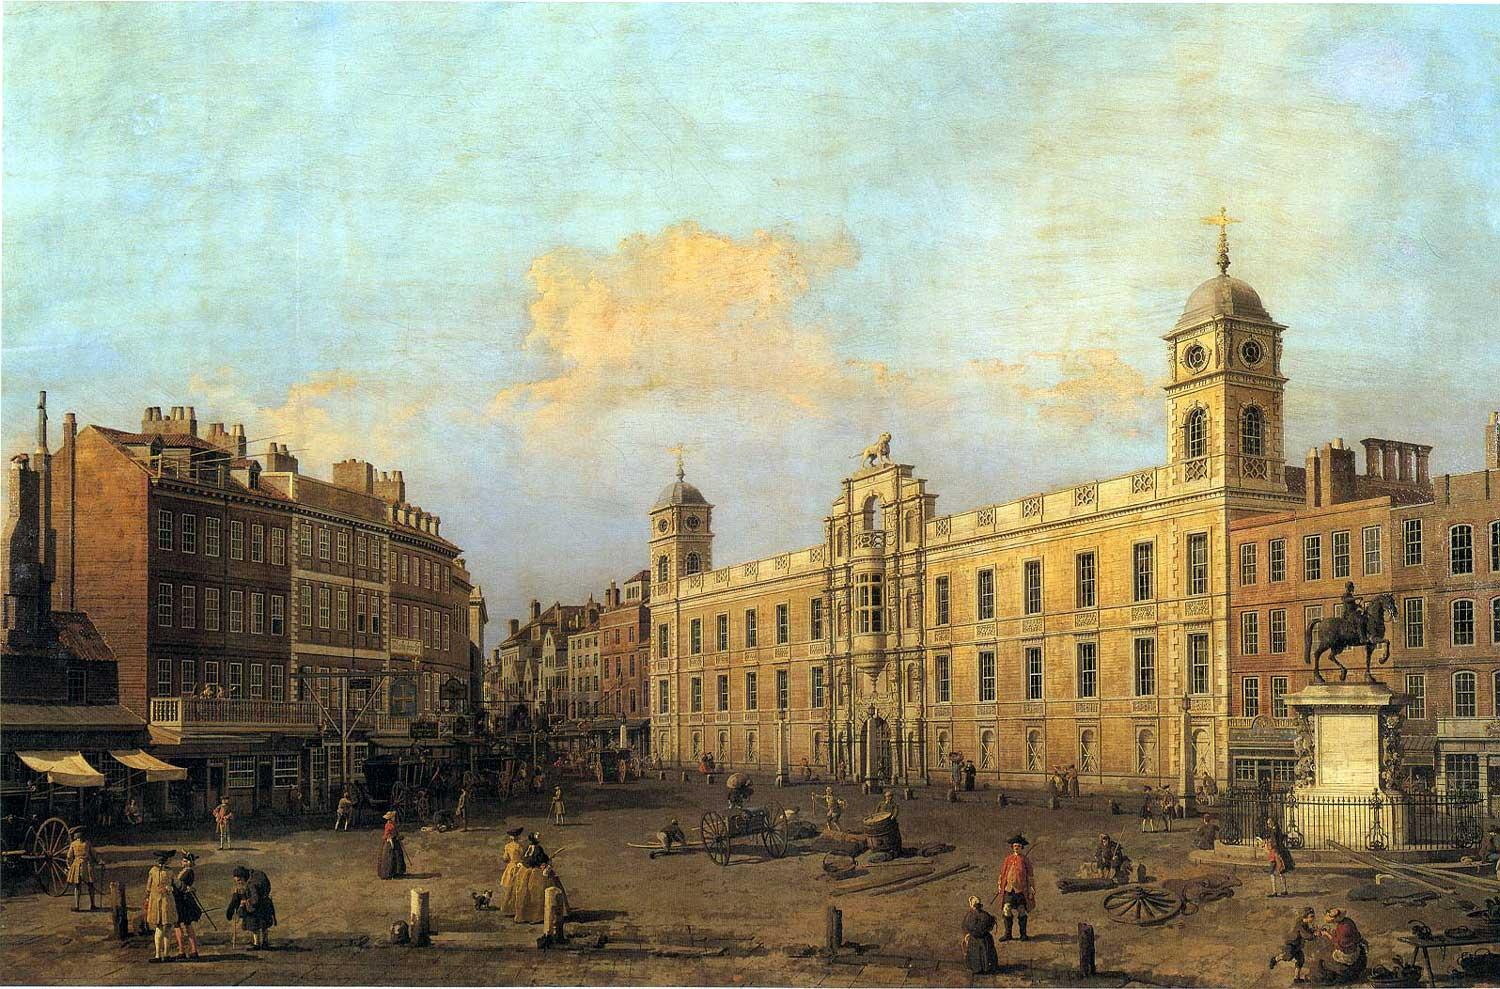 http://upload.wikimedia.org/wikipedia/commons/f/f3/Northumberland_House_by_Canaletto_%281752%29.JPG